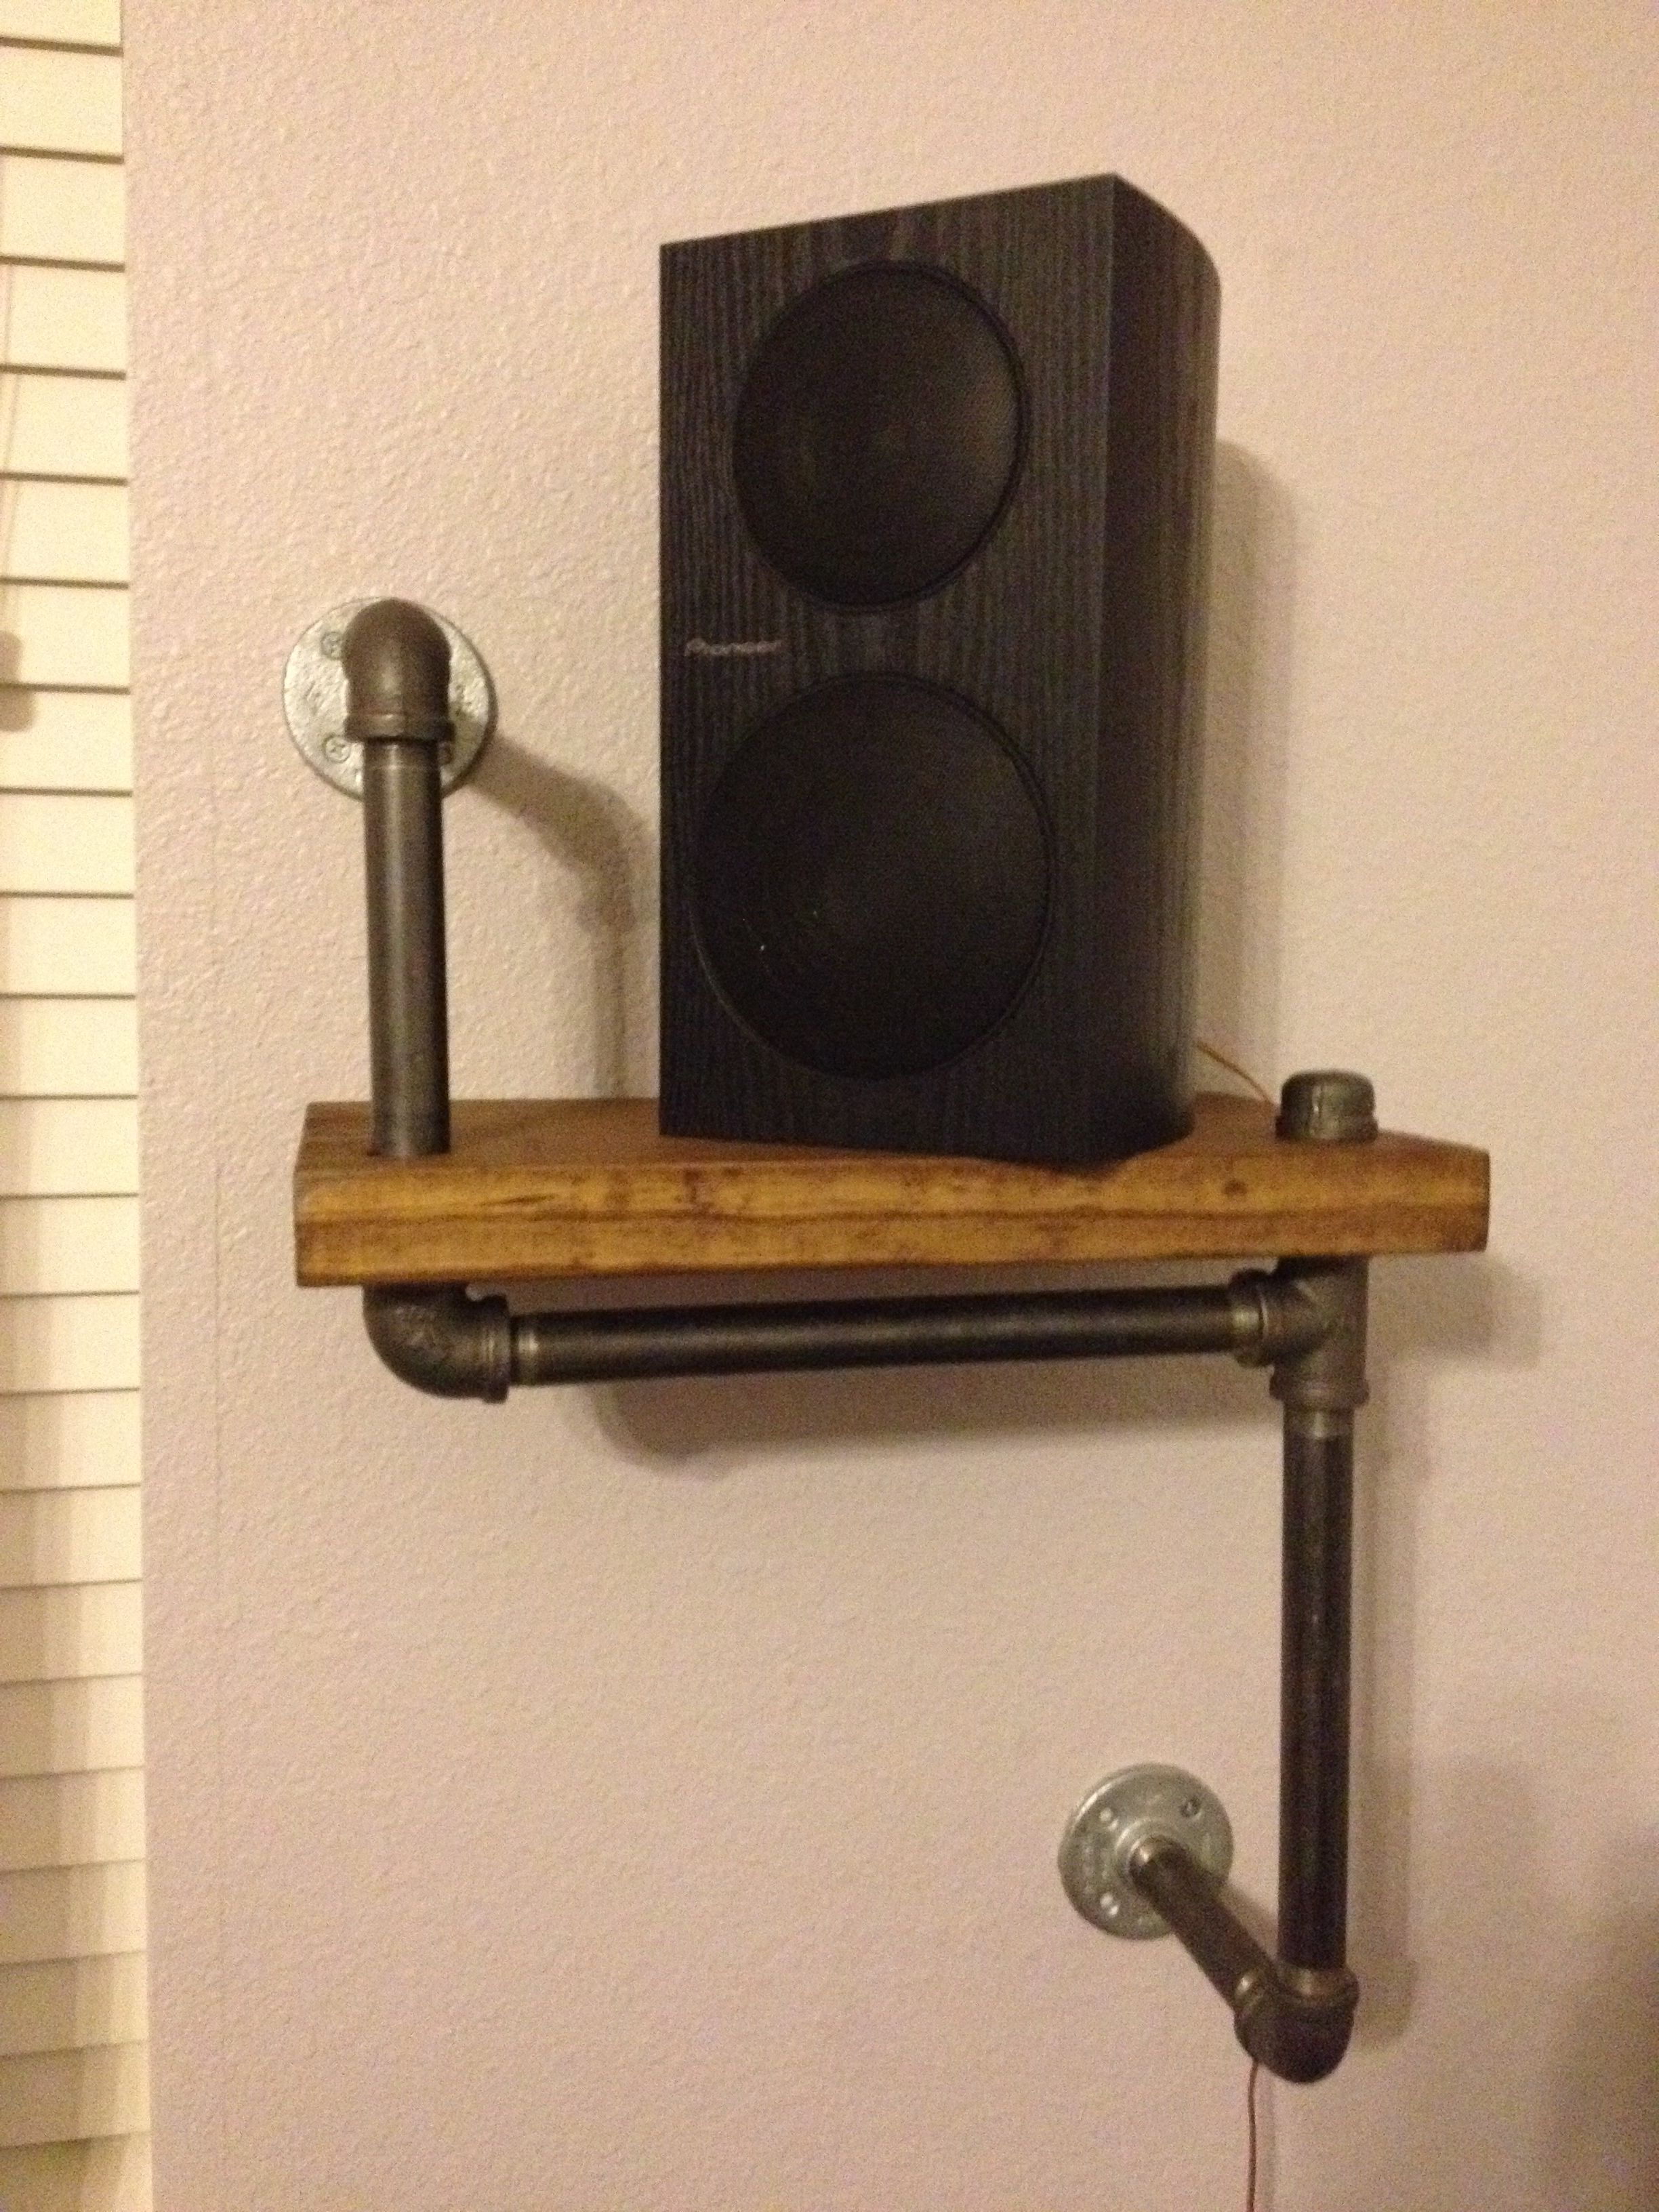 Dock Furniture Ideas The Other Speaker Stand Made By Husband And Me Black